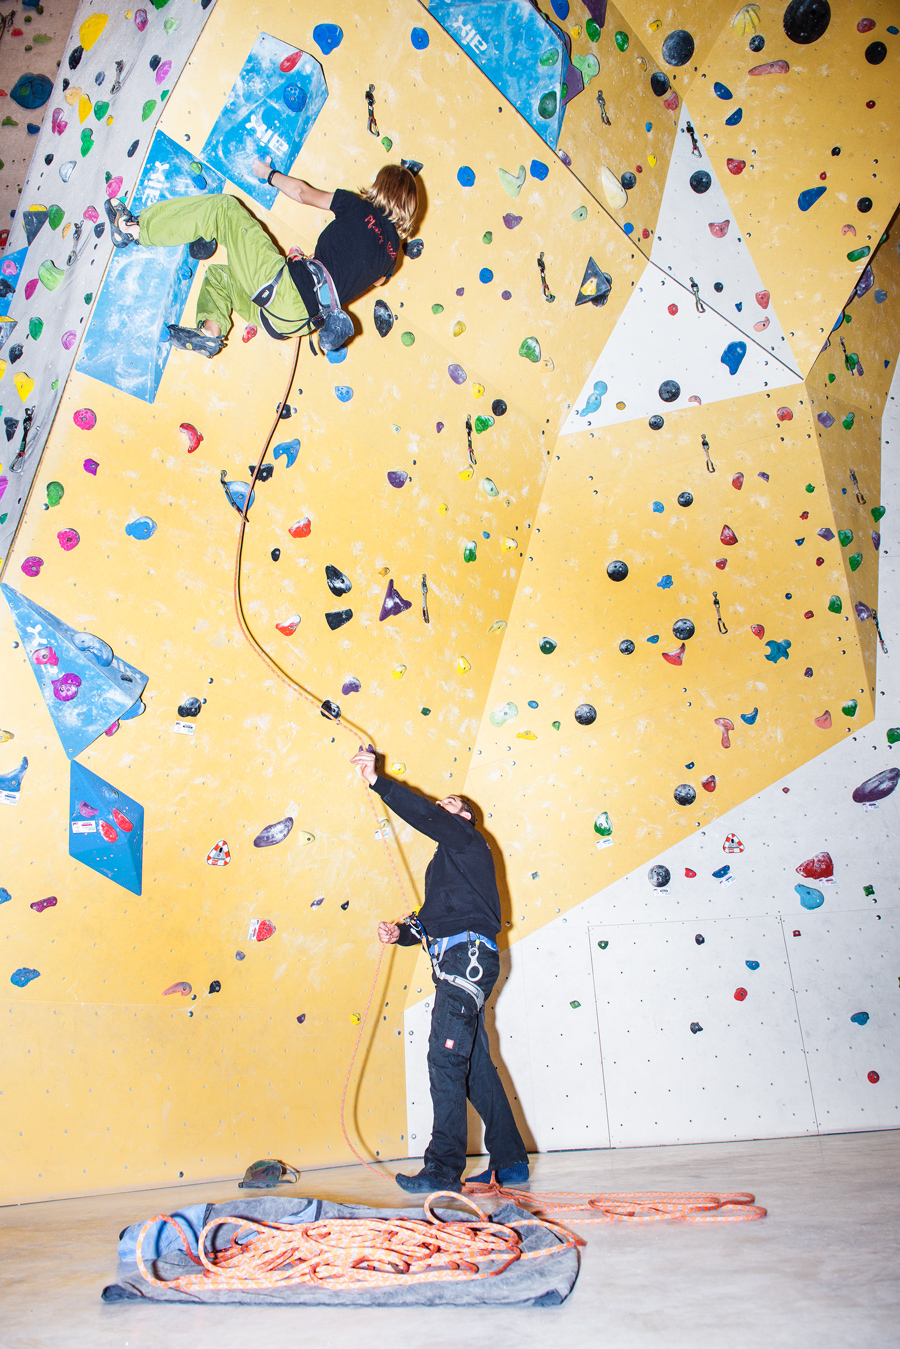 Pfalz-Rock_Top-Rope2_Foto-Claus-Geiss